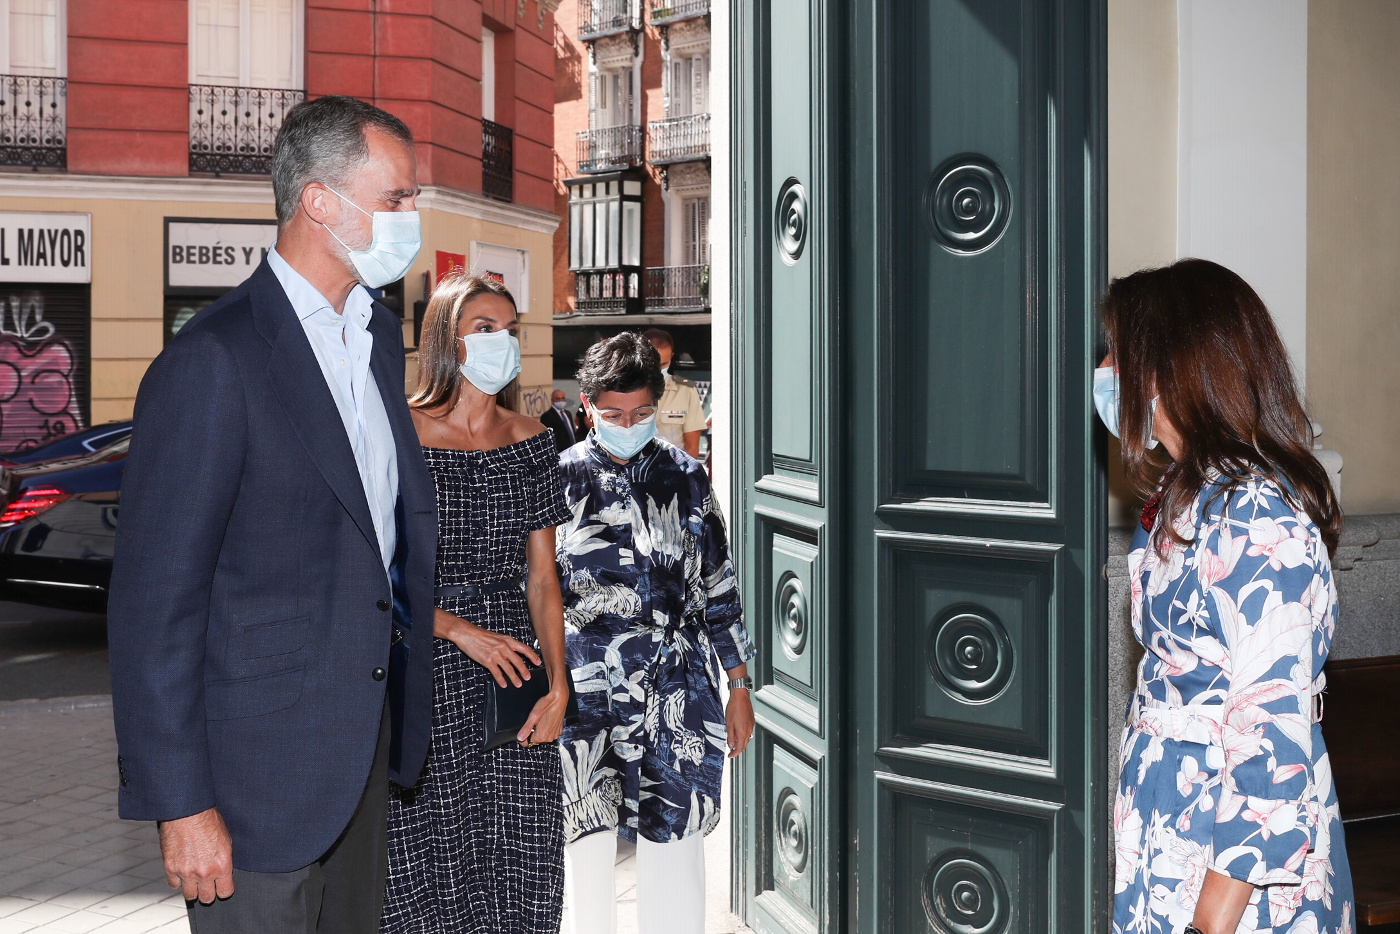 Queen Letizia of Spain attended a meeting at Viana Palace wearing a Zara dress